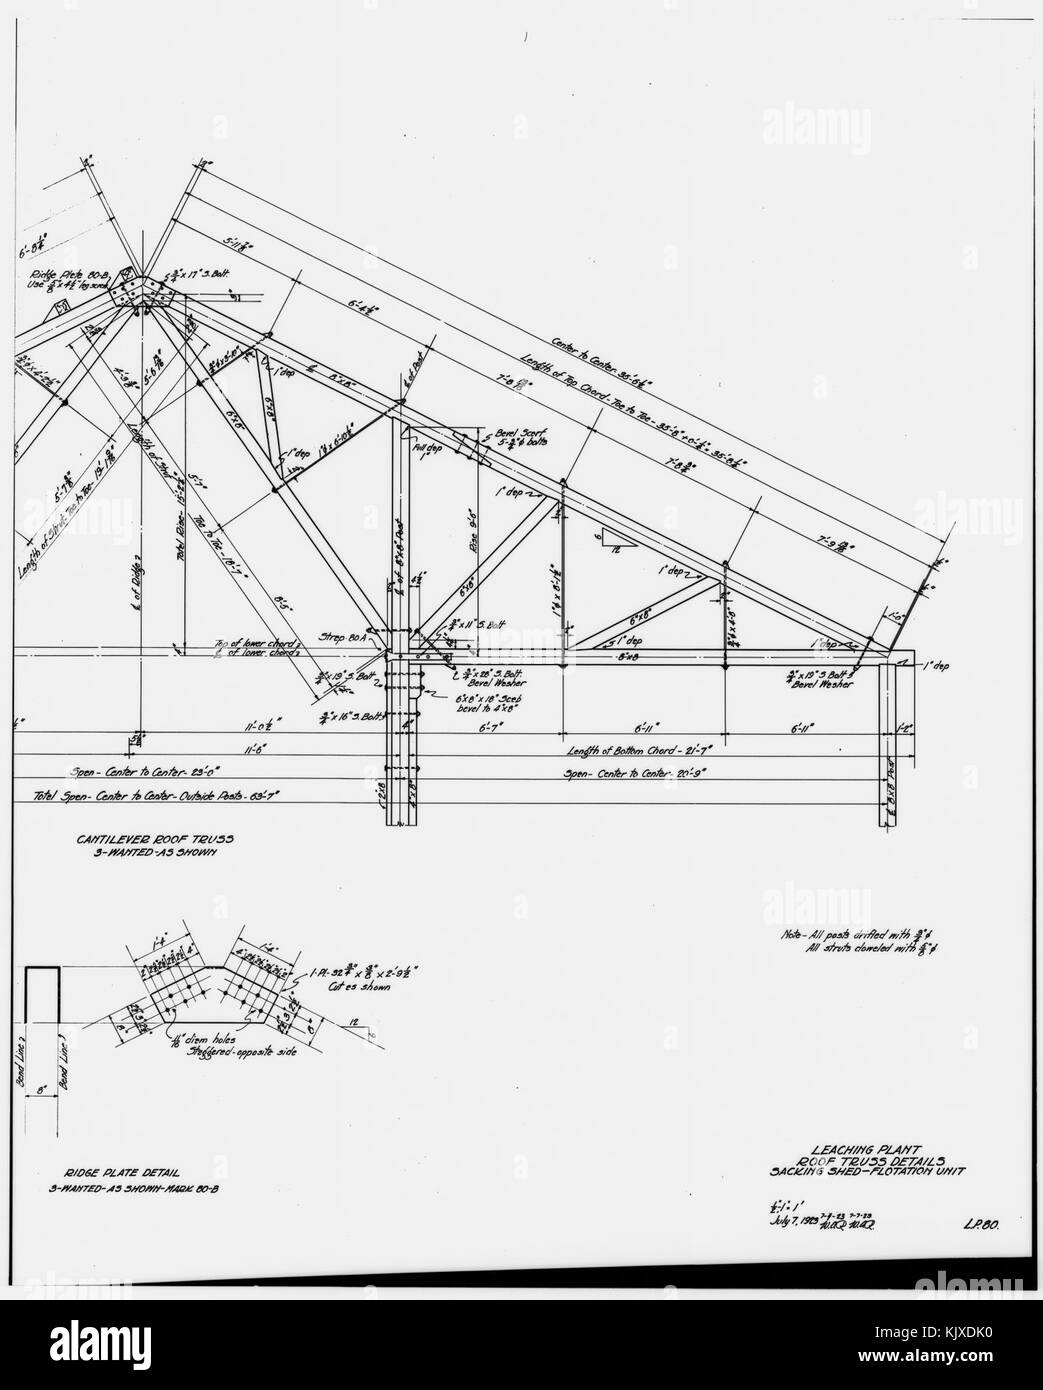 51 Photocopy Of Drawing Ammonia Leaching Plant Roof Truss